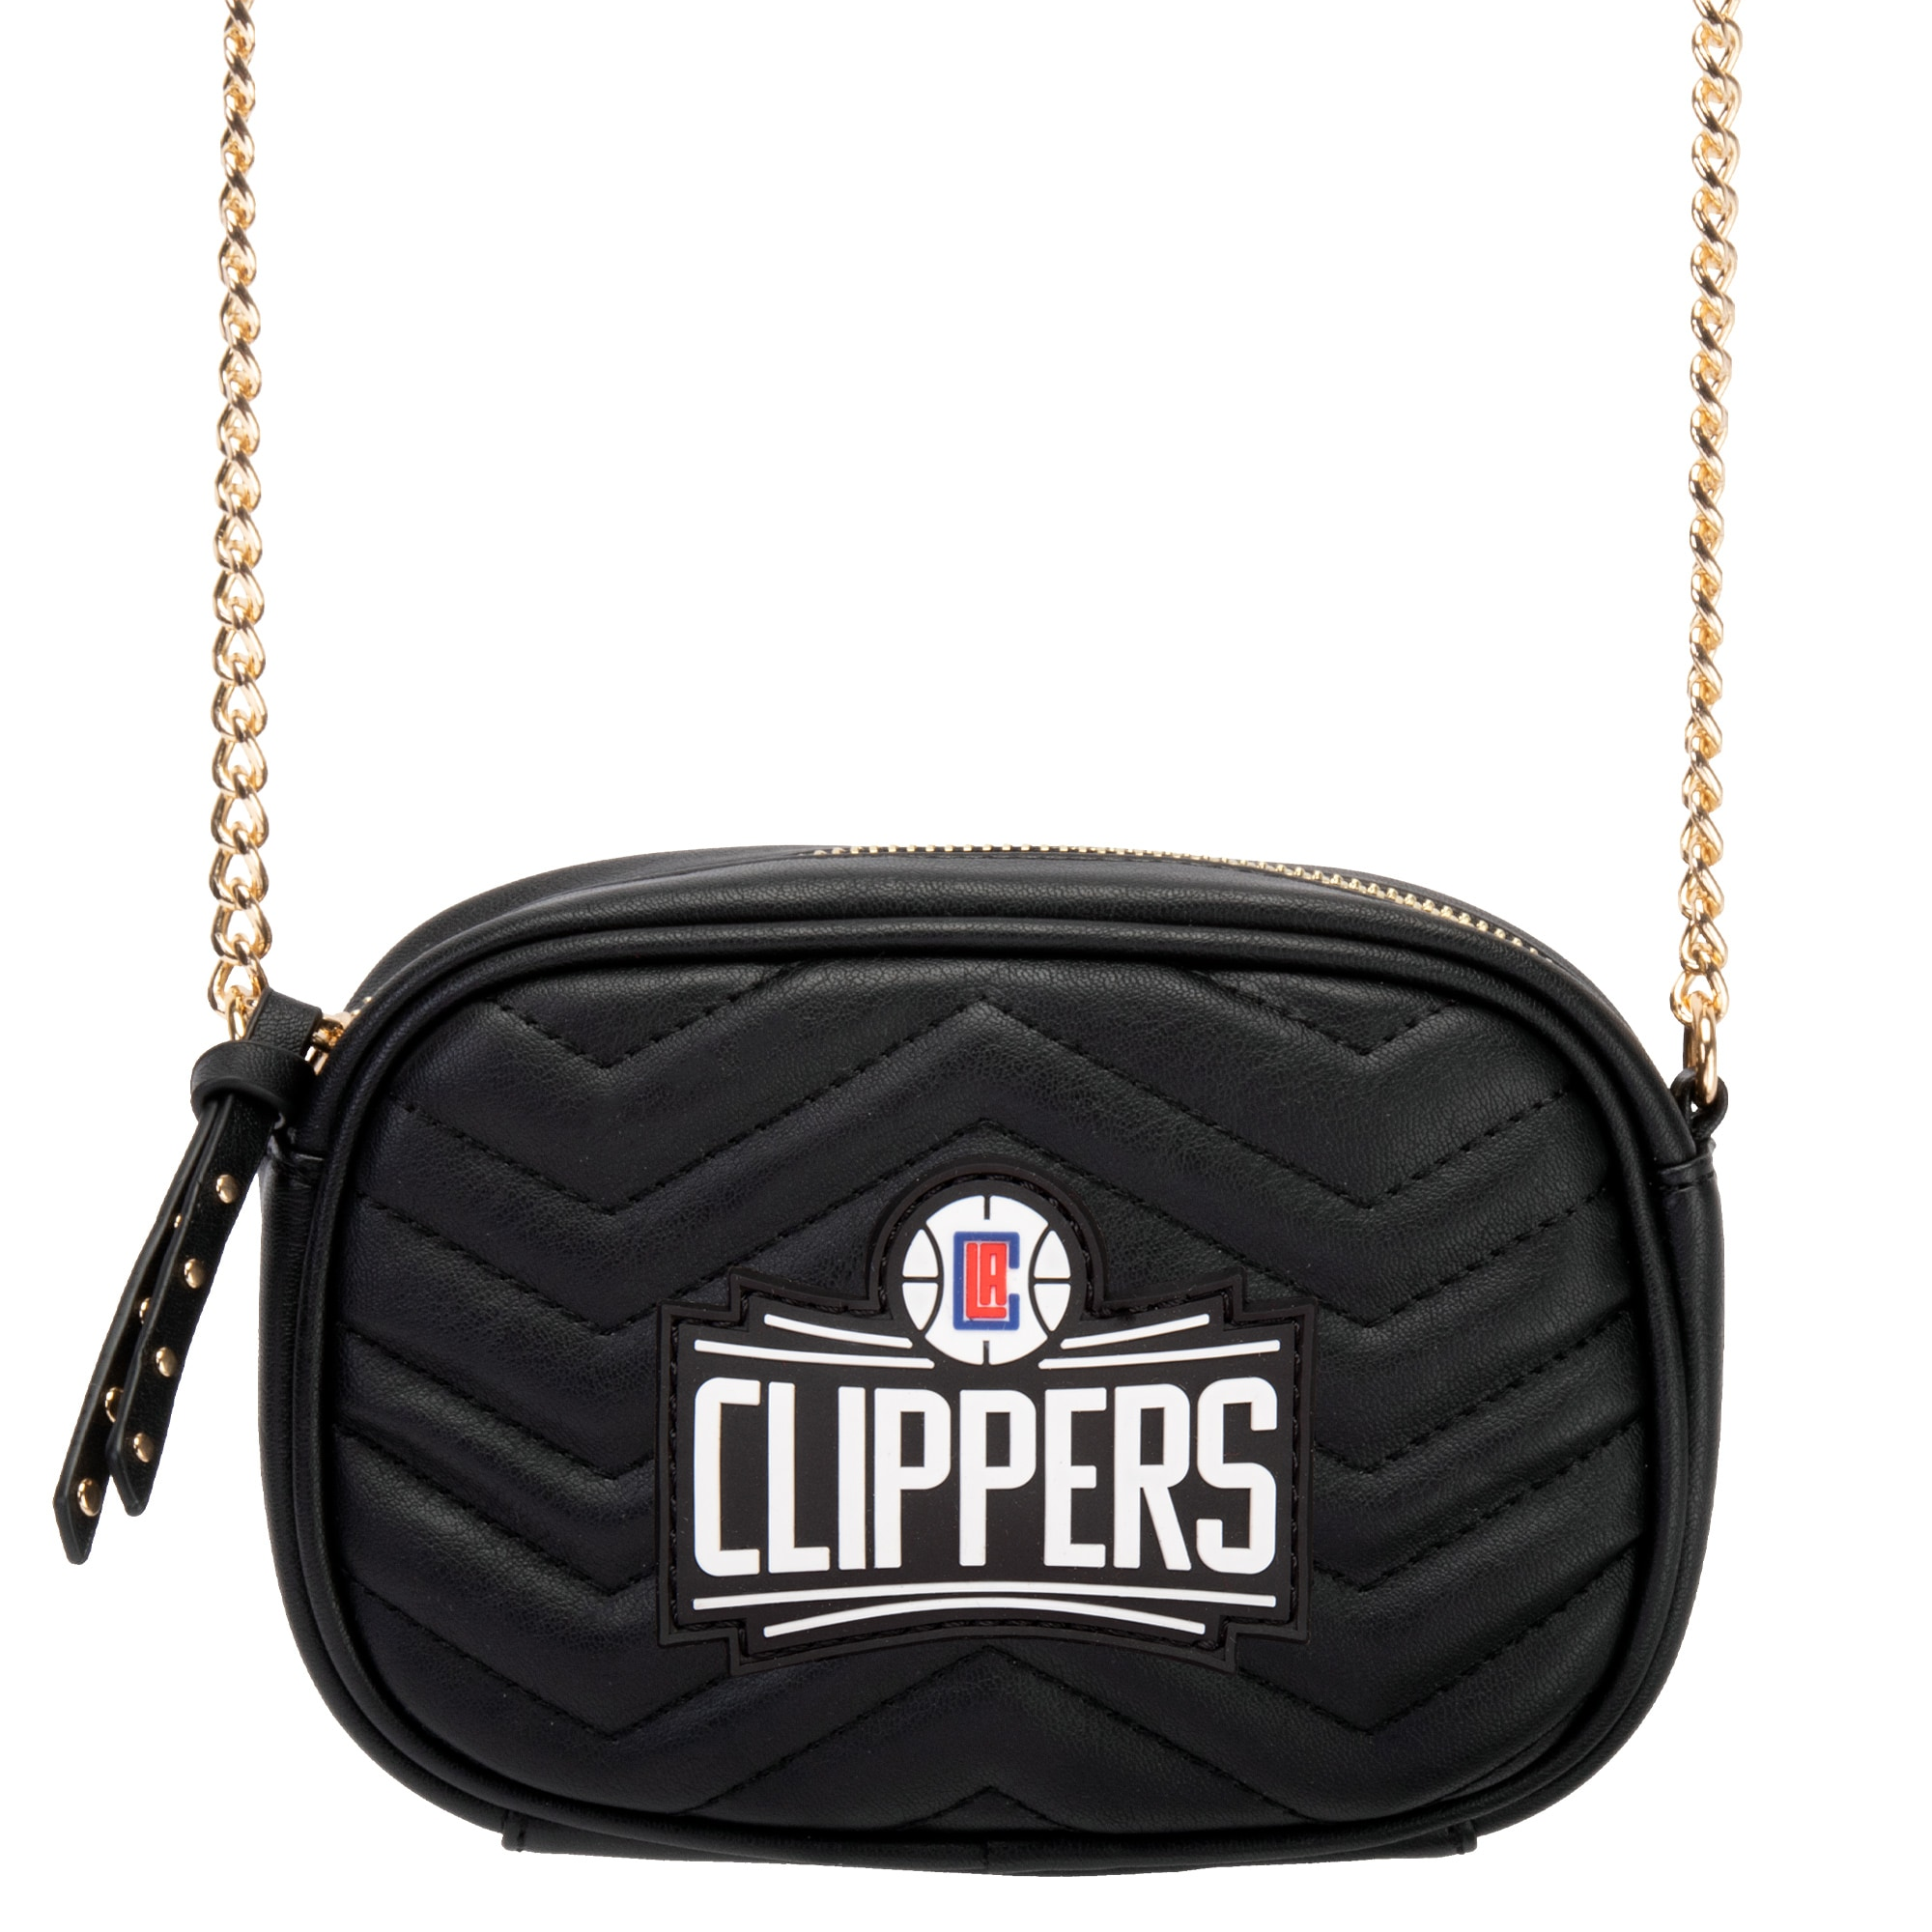 LA Clippers Women's Crossbody Bag - Black